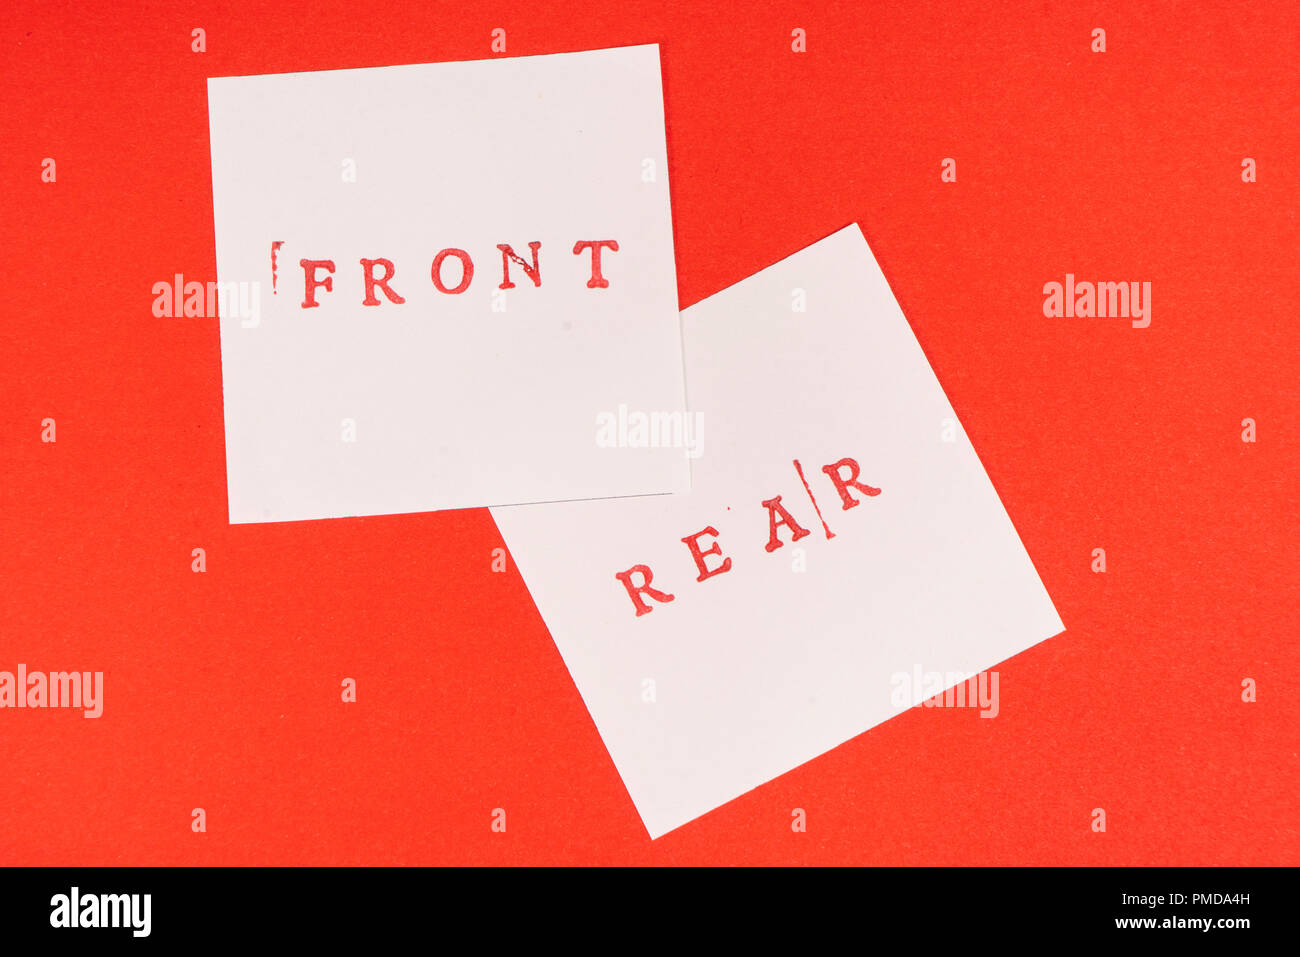 the contrast between the front and rear words printed on two sheets of paper - Stock Image